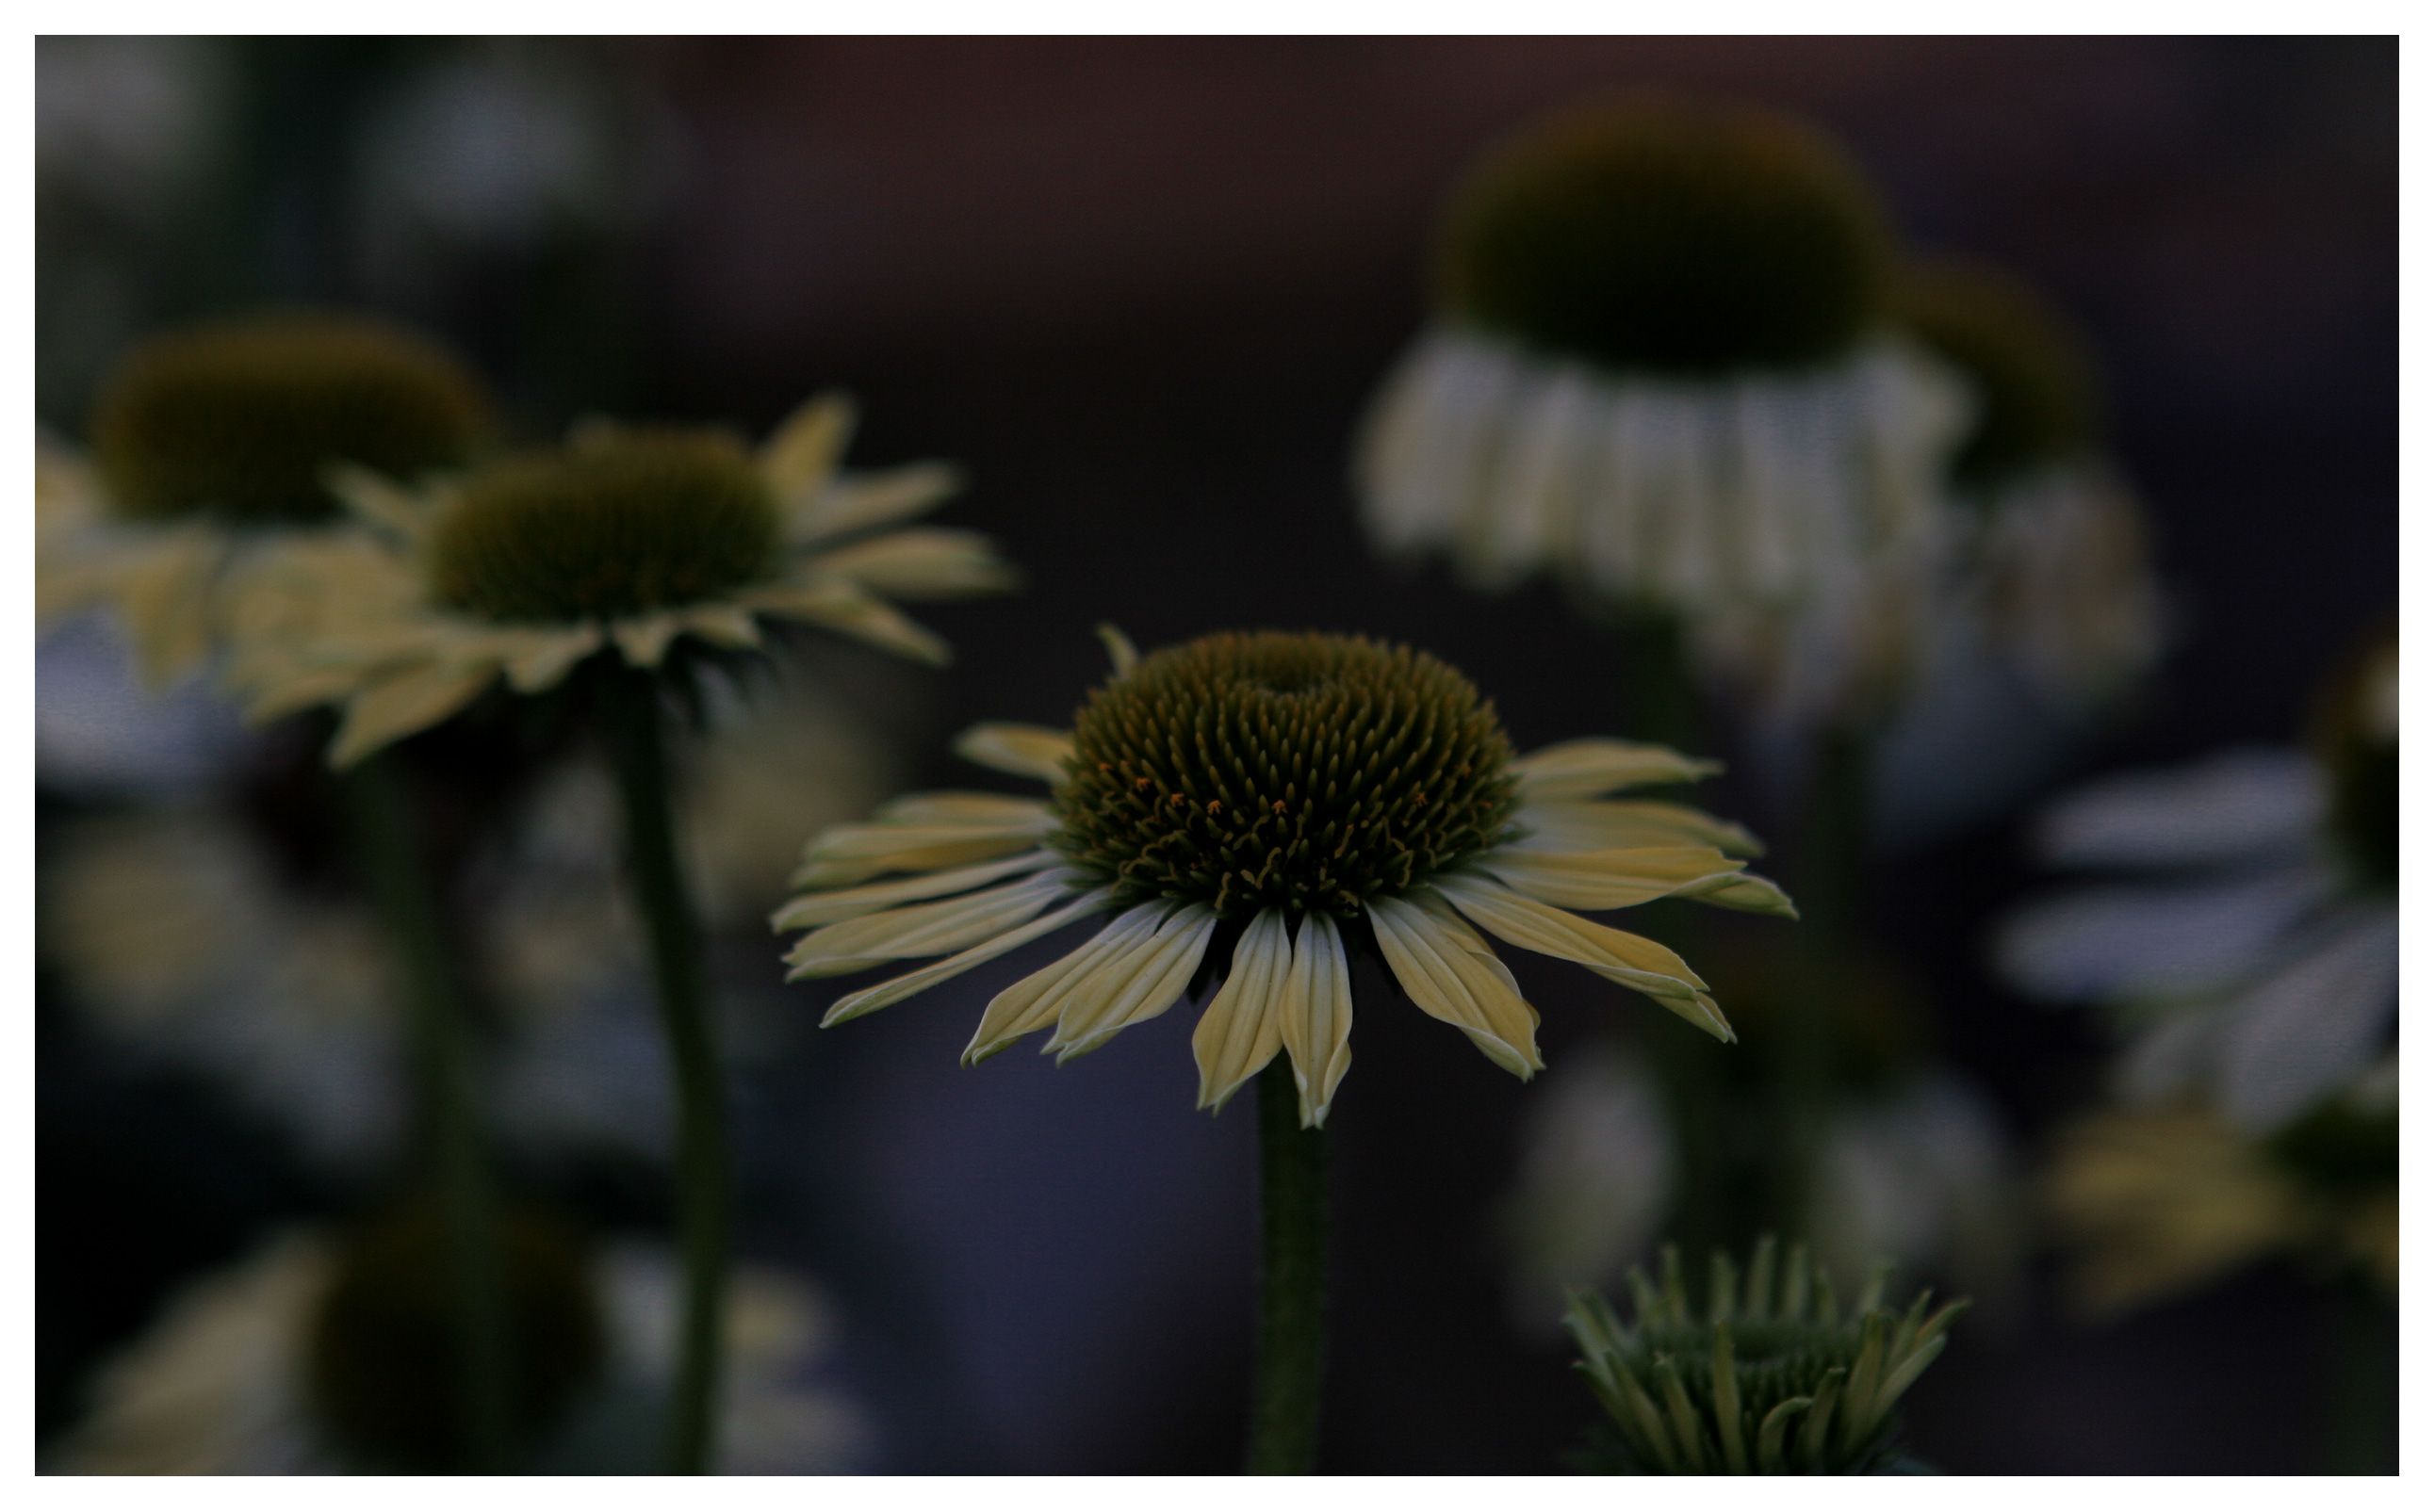 Image of Echinacea flowers